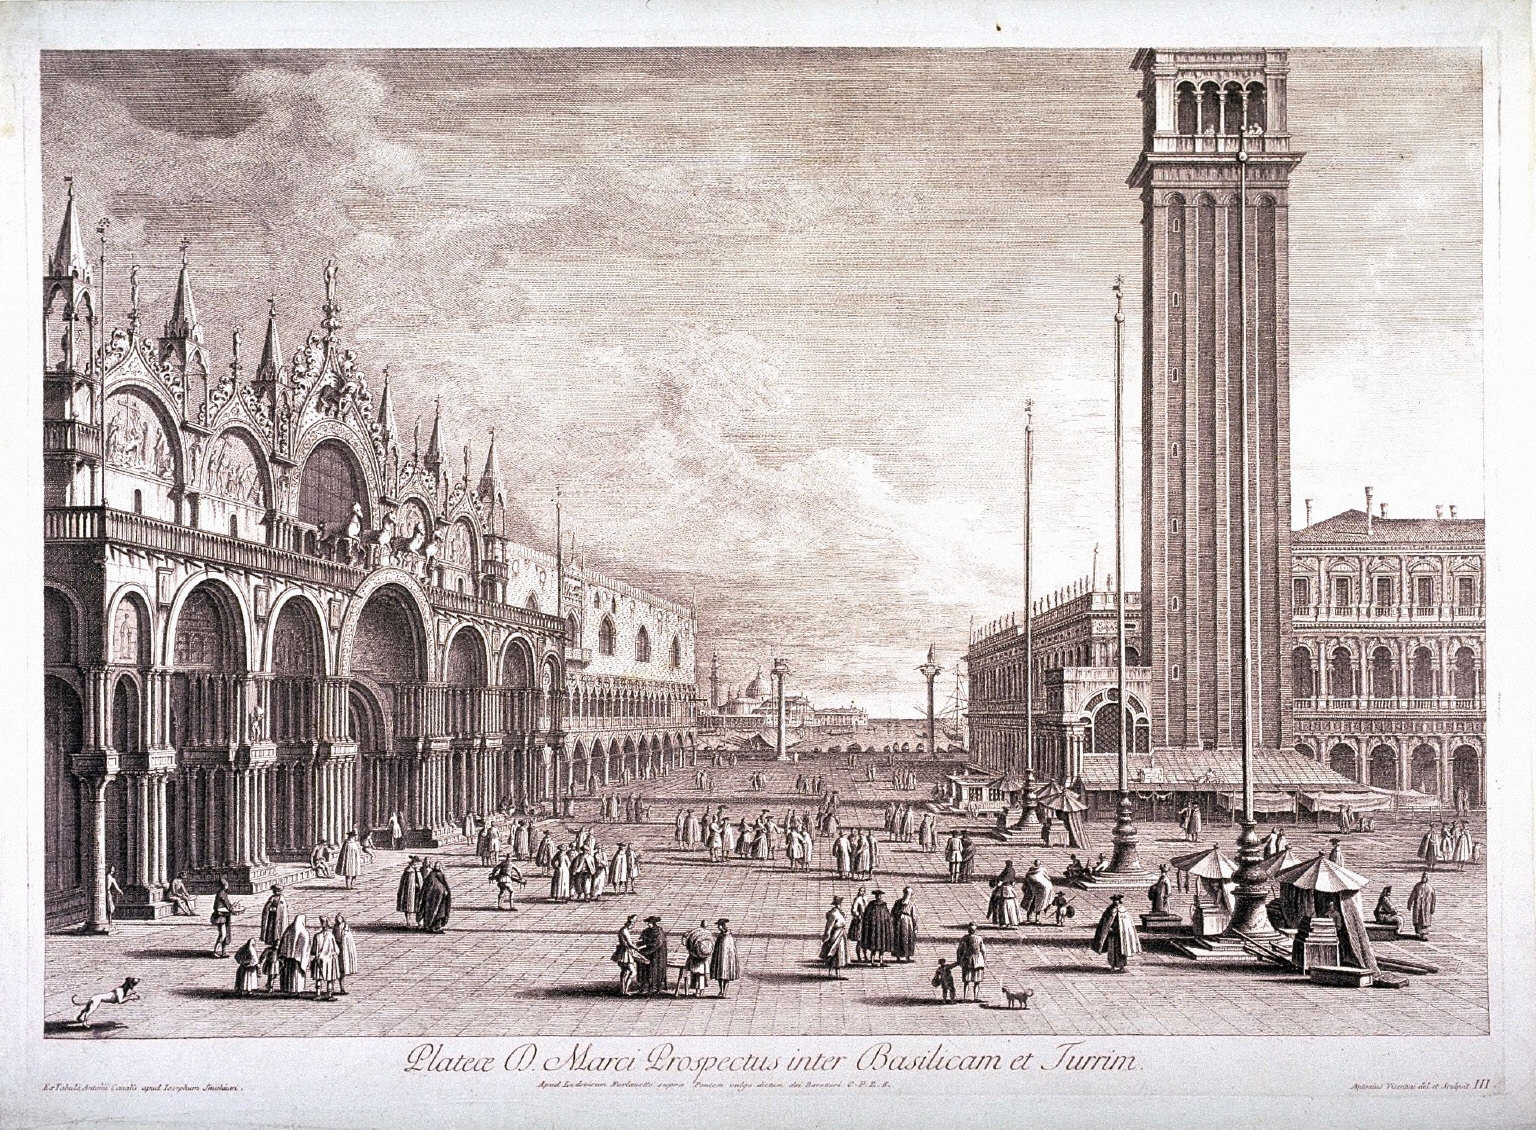 Piazza San Marco, View Between Church and Tower, pl. III from a series of four scenes of the Piazza after Canaletto